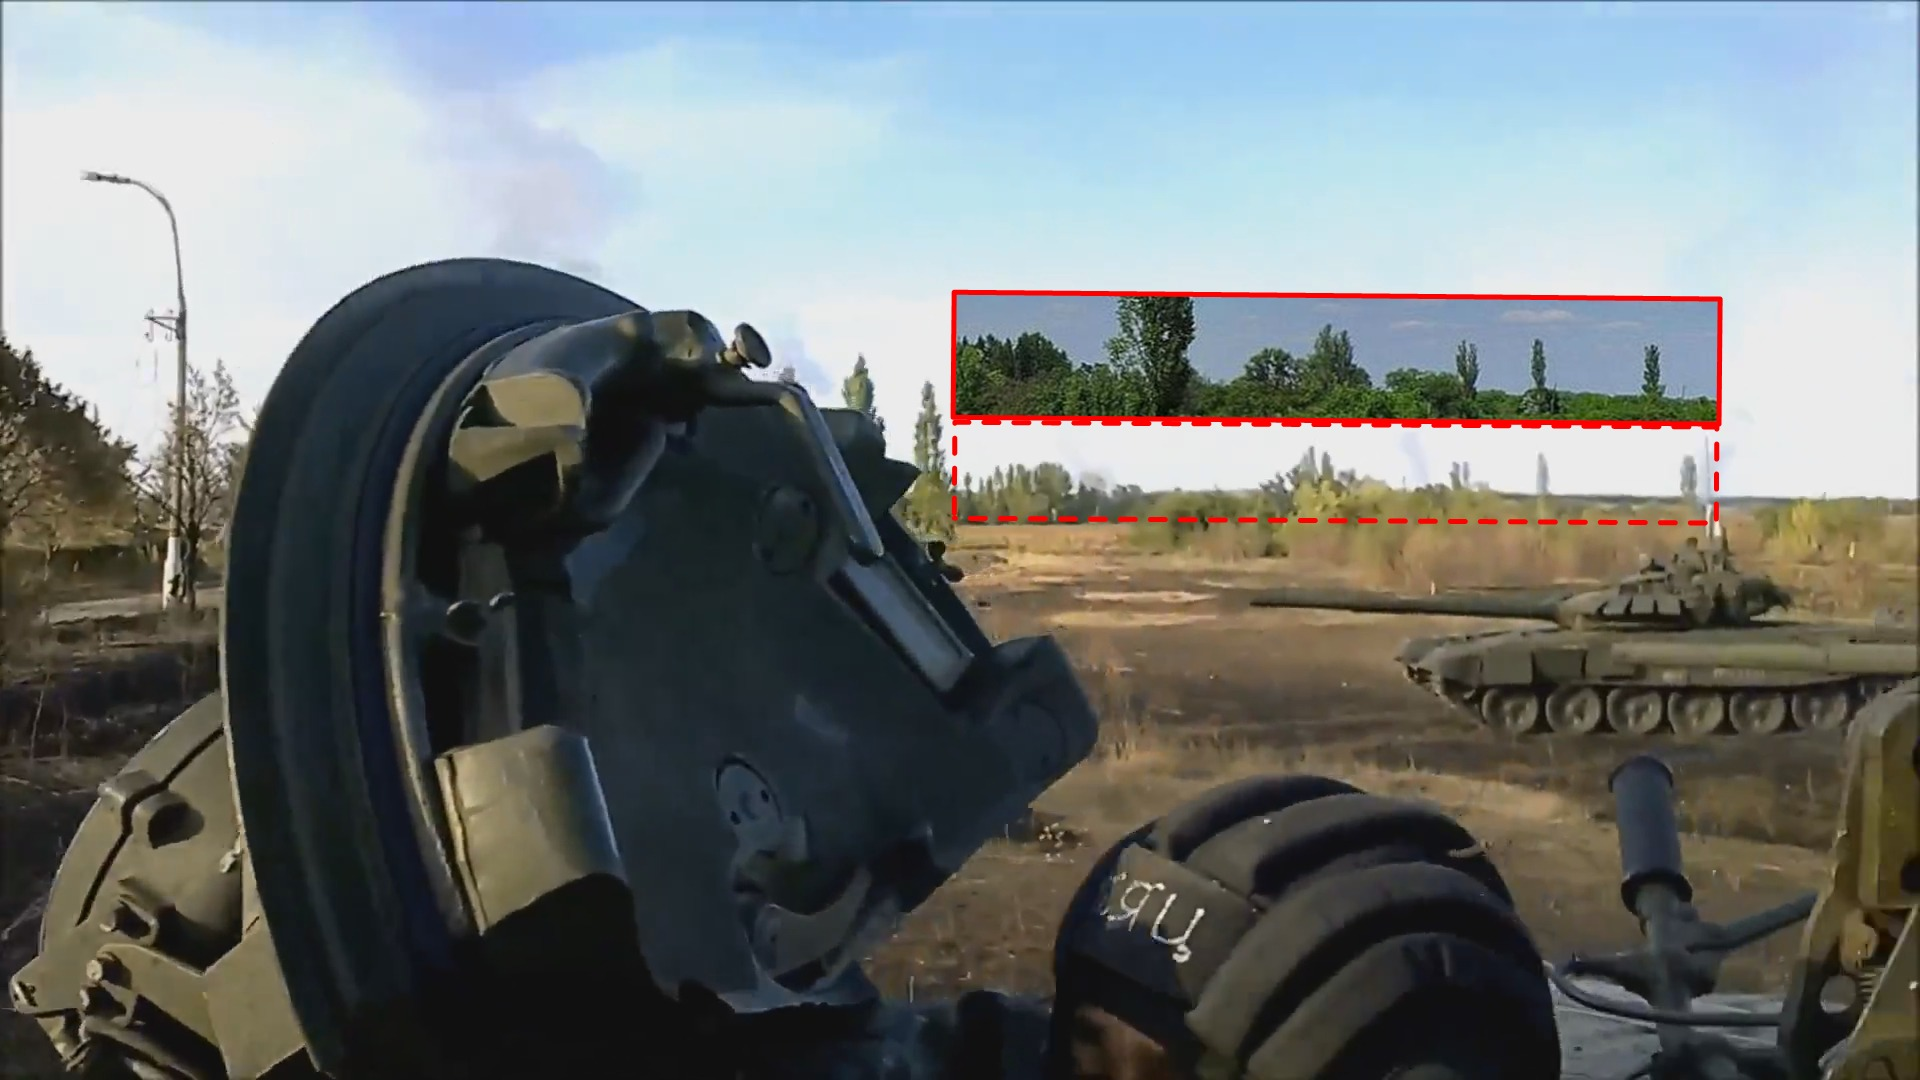 The same line of trees, visible in the video of the 200th Brigade at the Luhansk Airport, looking northeast